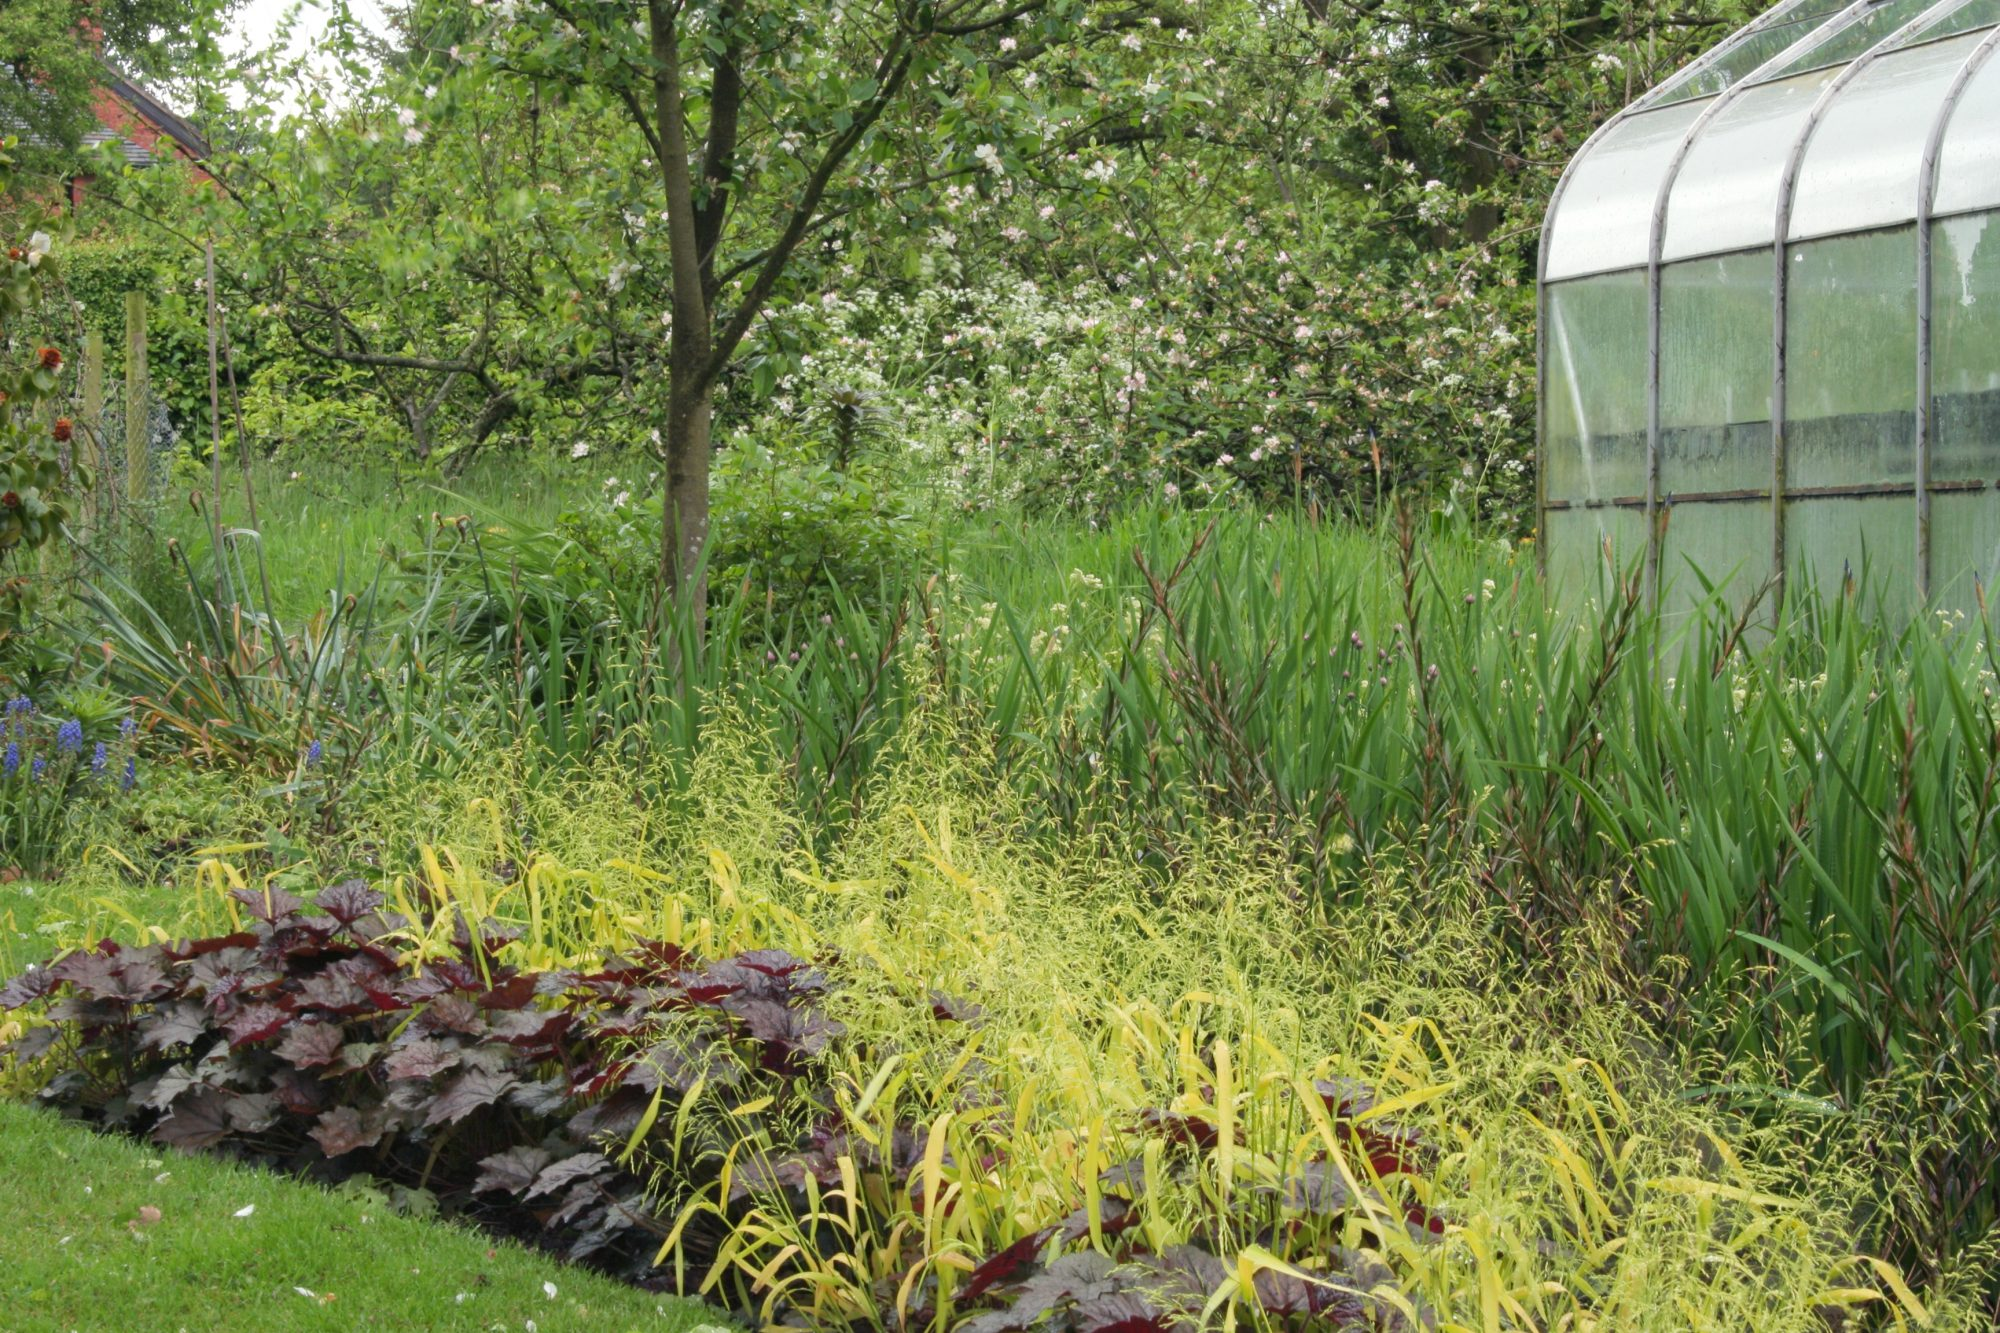 """Every region has native plants that are """"resistant, and even resilient, to animal browse,"""" says Griffin; check plant and garden stores, cooperative extension services, and native plant databases for ideas specific to your area. Then, carefully consider how and where to place your plants. """"The keys to increasing your success are found in plant selection and placement—planting strategically and with abundance,"""" says Griffin. """"Fundamentally, anything out in the open, by itself, will always be vulnerable, so arranging a variety of plantings in higher densities will improve any impact from browsing wildlife. Plants allowed to grow and weave together naturally have more success in resisting browse pressure of deer, rabbits, and other animals."""""""